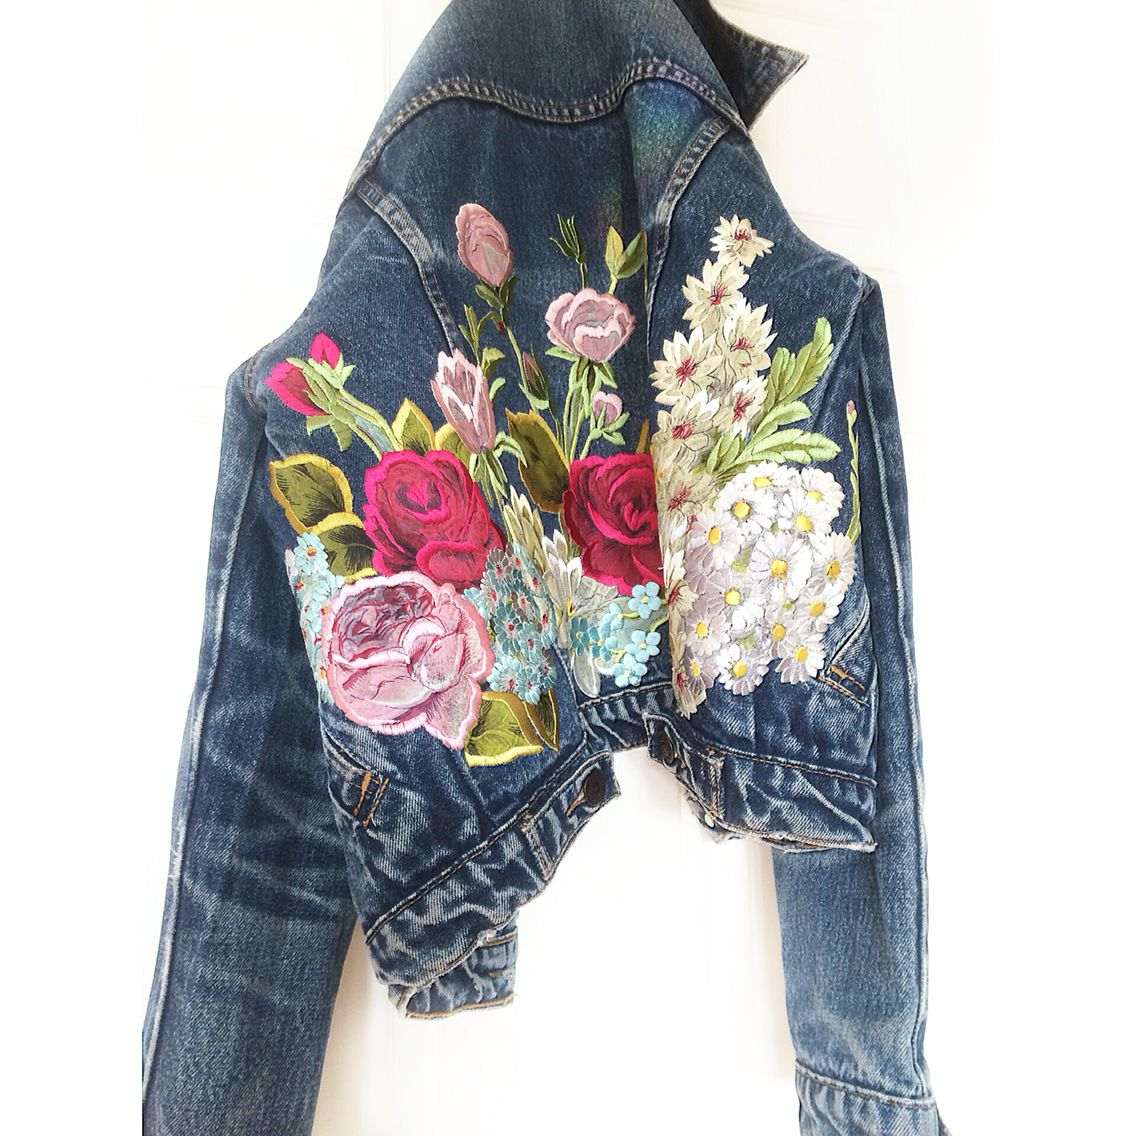 Embroidered Levis Jacket Ellie Mac Embroidery